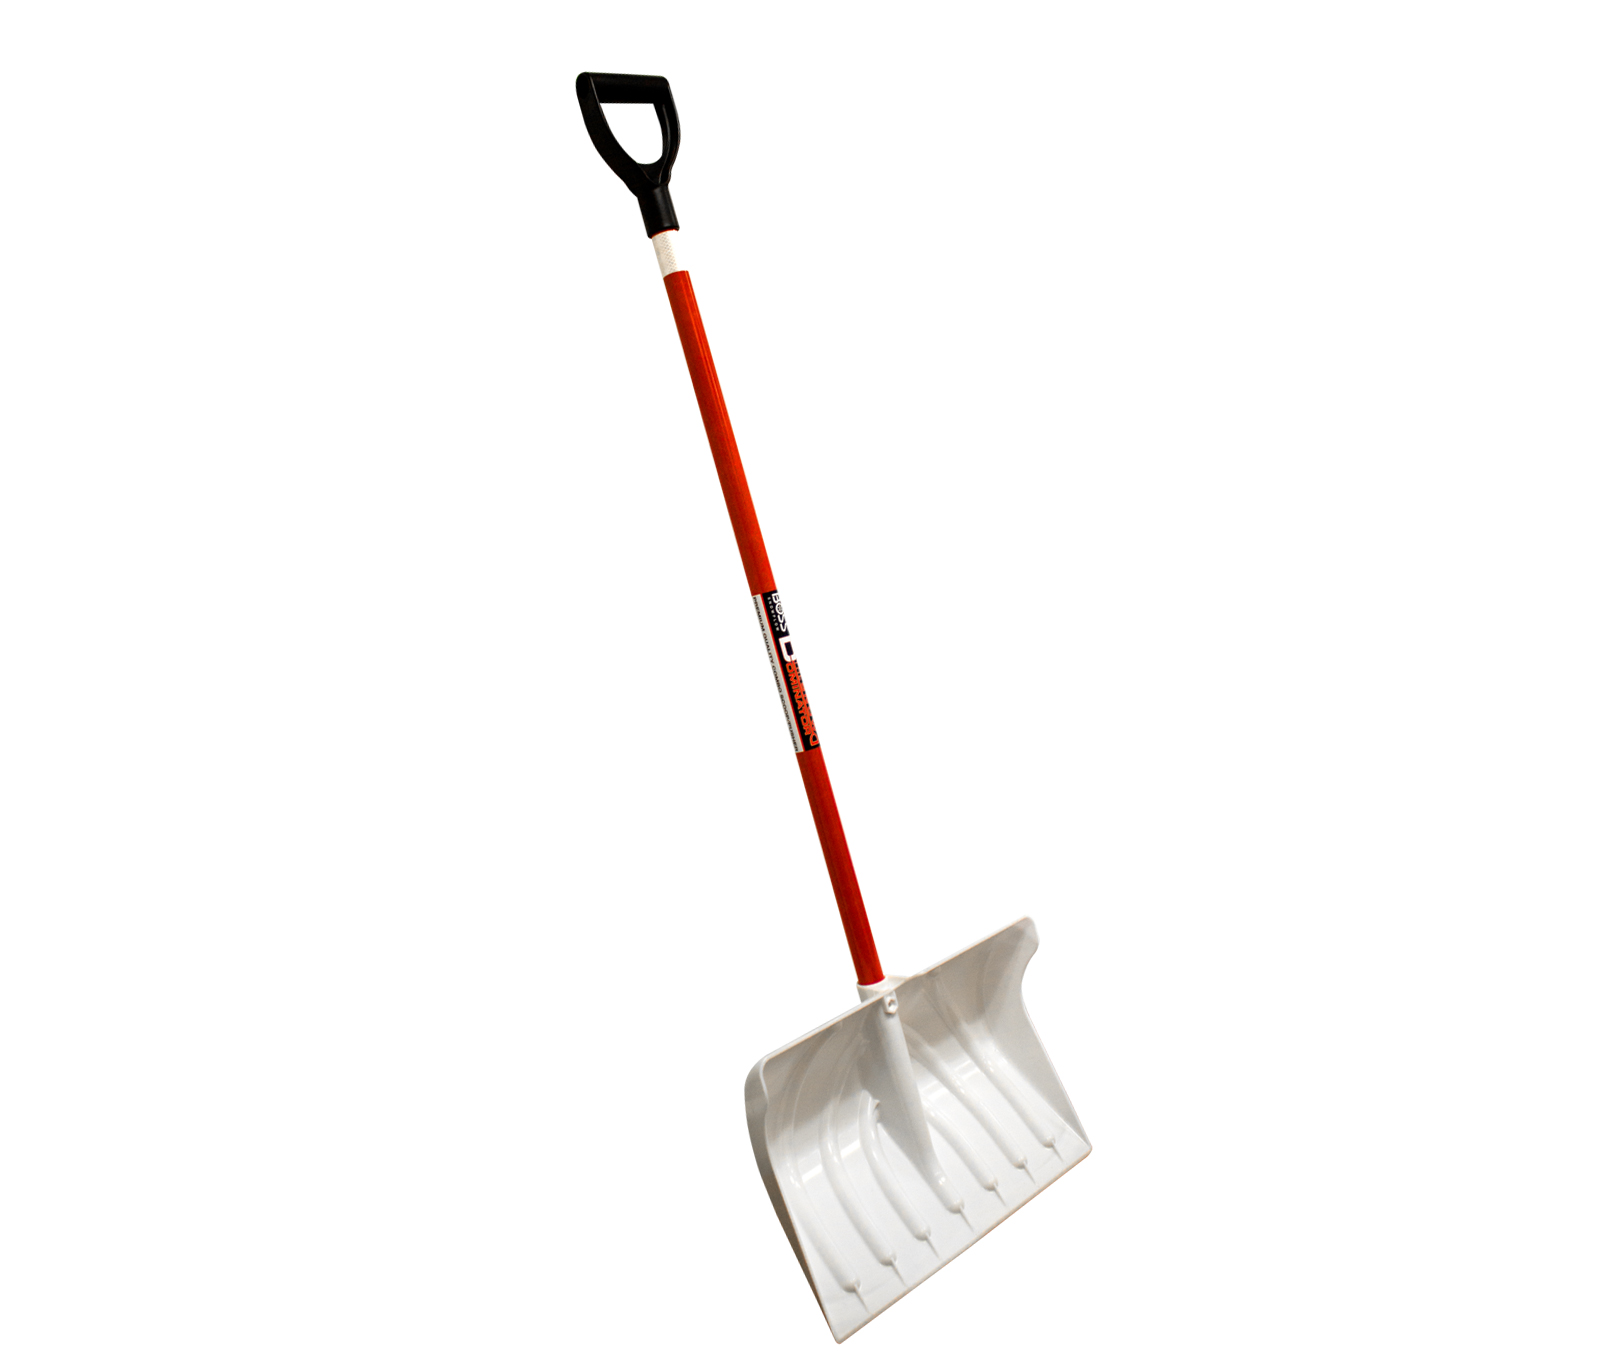 MSC21809A - BOSS SNOWPLOW - SNOW DOMINATOR SCOOP SHOVEL Image